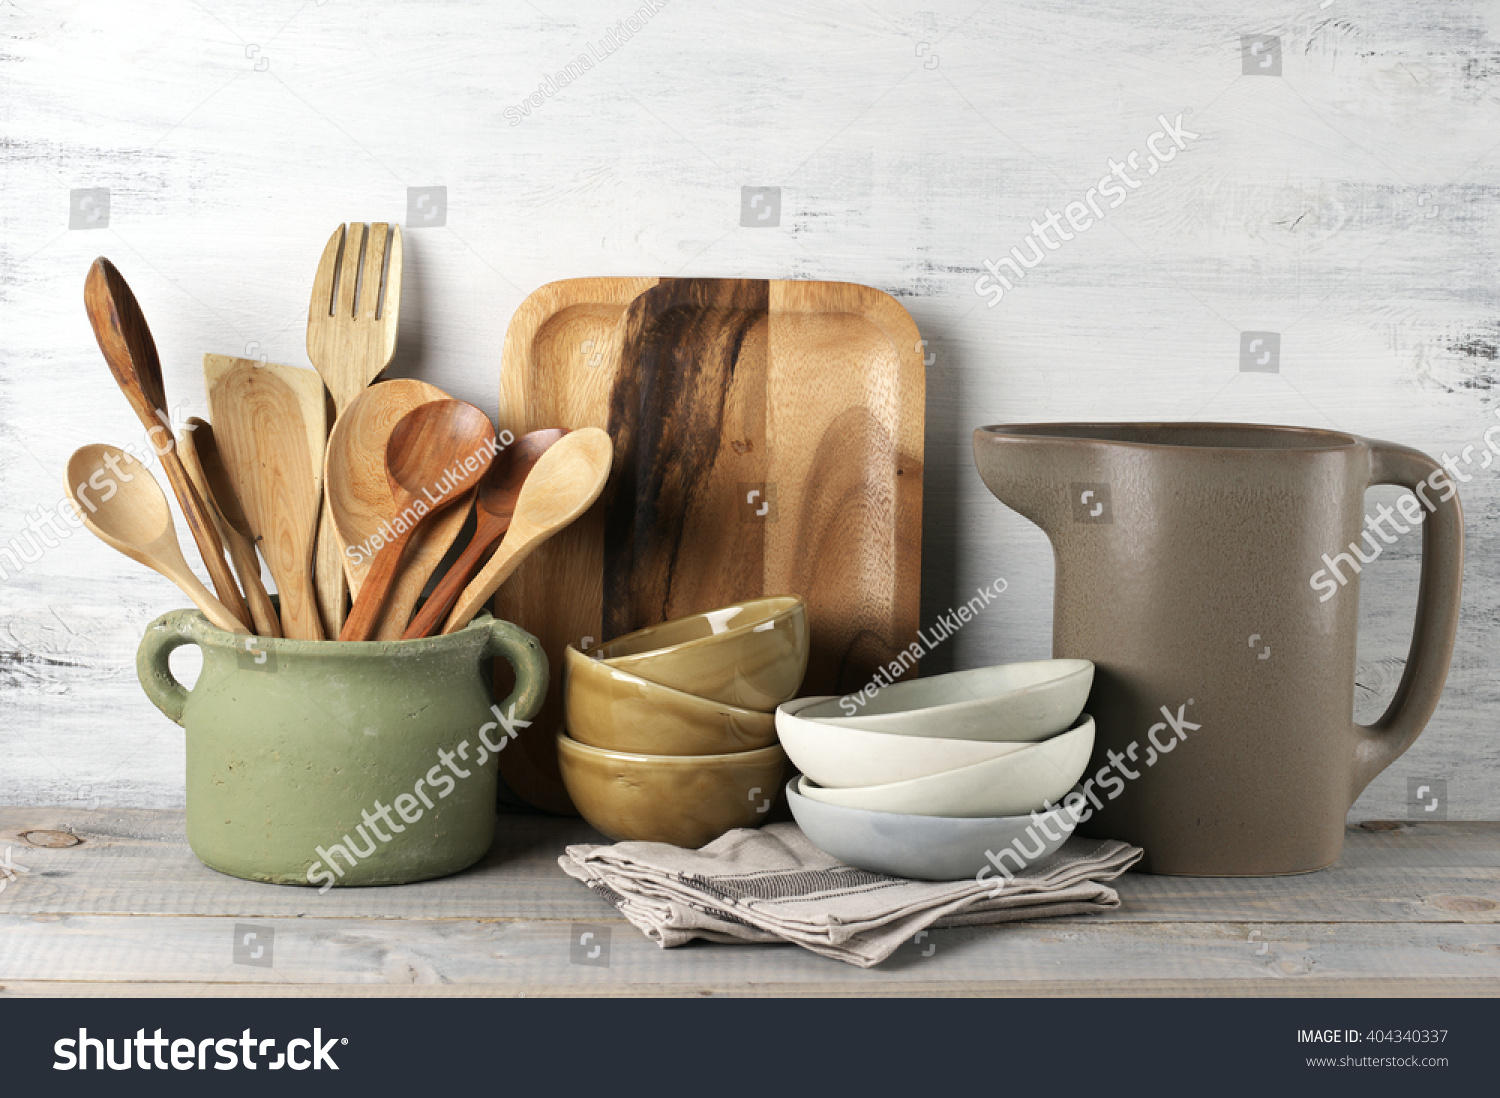 Simple Rustic Kitchenware Against White Wooden Stock Photo 404340337 Shutterstock